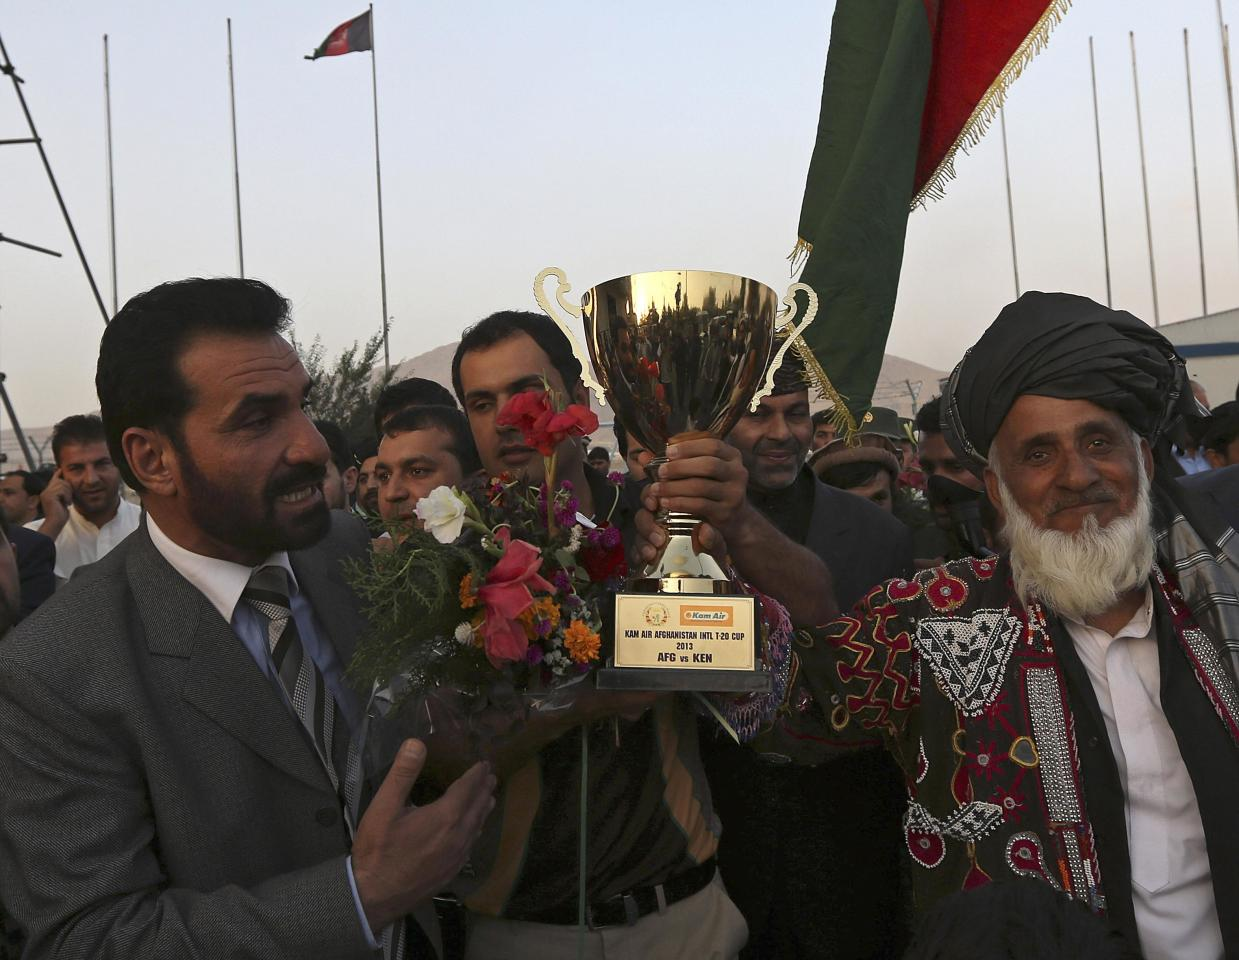 Afghan cricket team captain Mohammad Nabi Esa Khil (C) holds the ACC Cup after the team's arrival in Kabul, in this October 12, 2013 file photo, following Afghanistan's qualification for the 2015 Cricket World Cup. Surrounded by thousands of makeshift tents in the dusty refugee camp he called home, not even in his wildest dreams could Mohammad Nabi have believed that his decision to while away the hours with a miniature cricket bat would lead him to play in the 2015 World Cup. To match feature CRICKET-AFGHANISTAN/ 